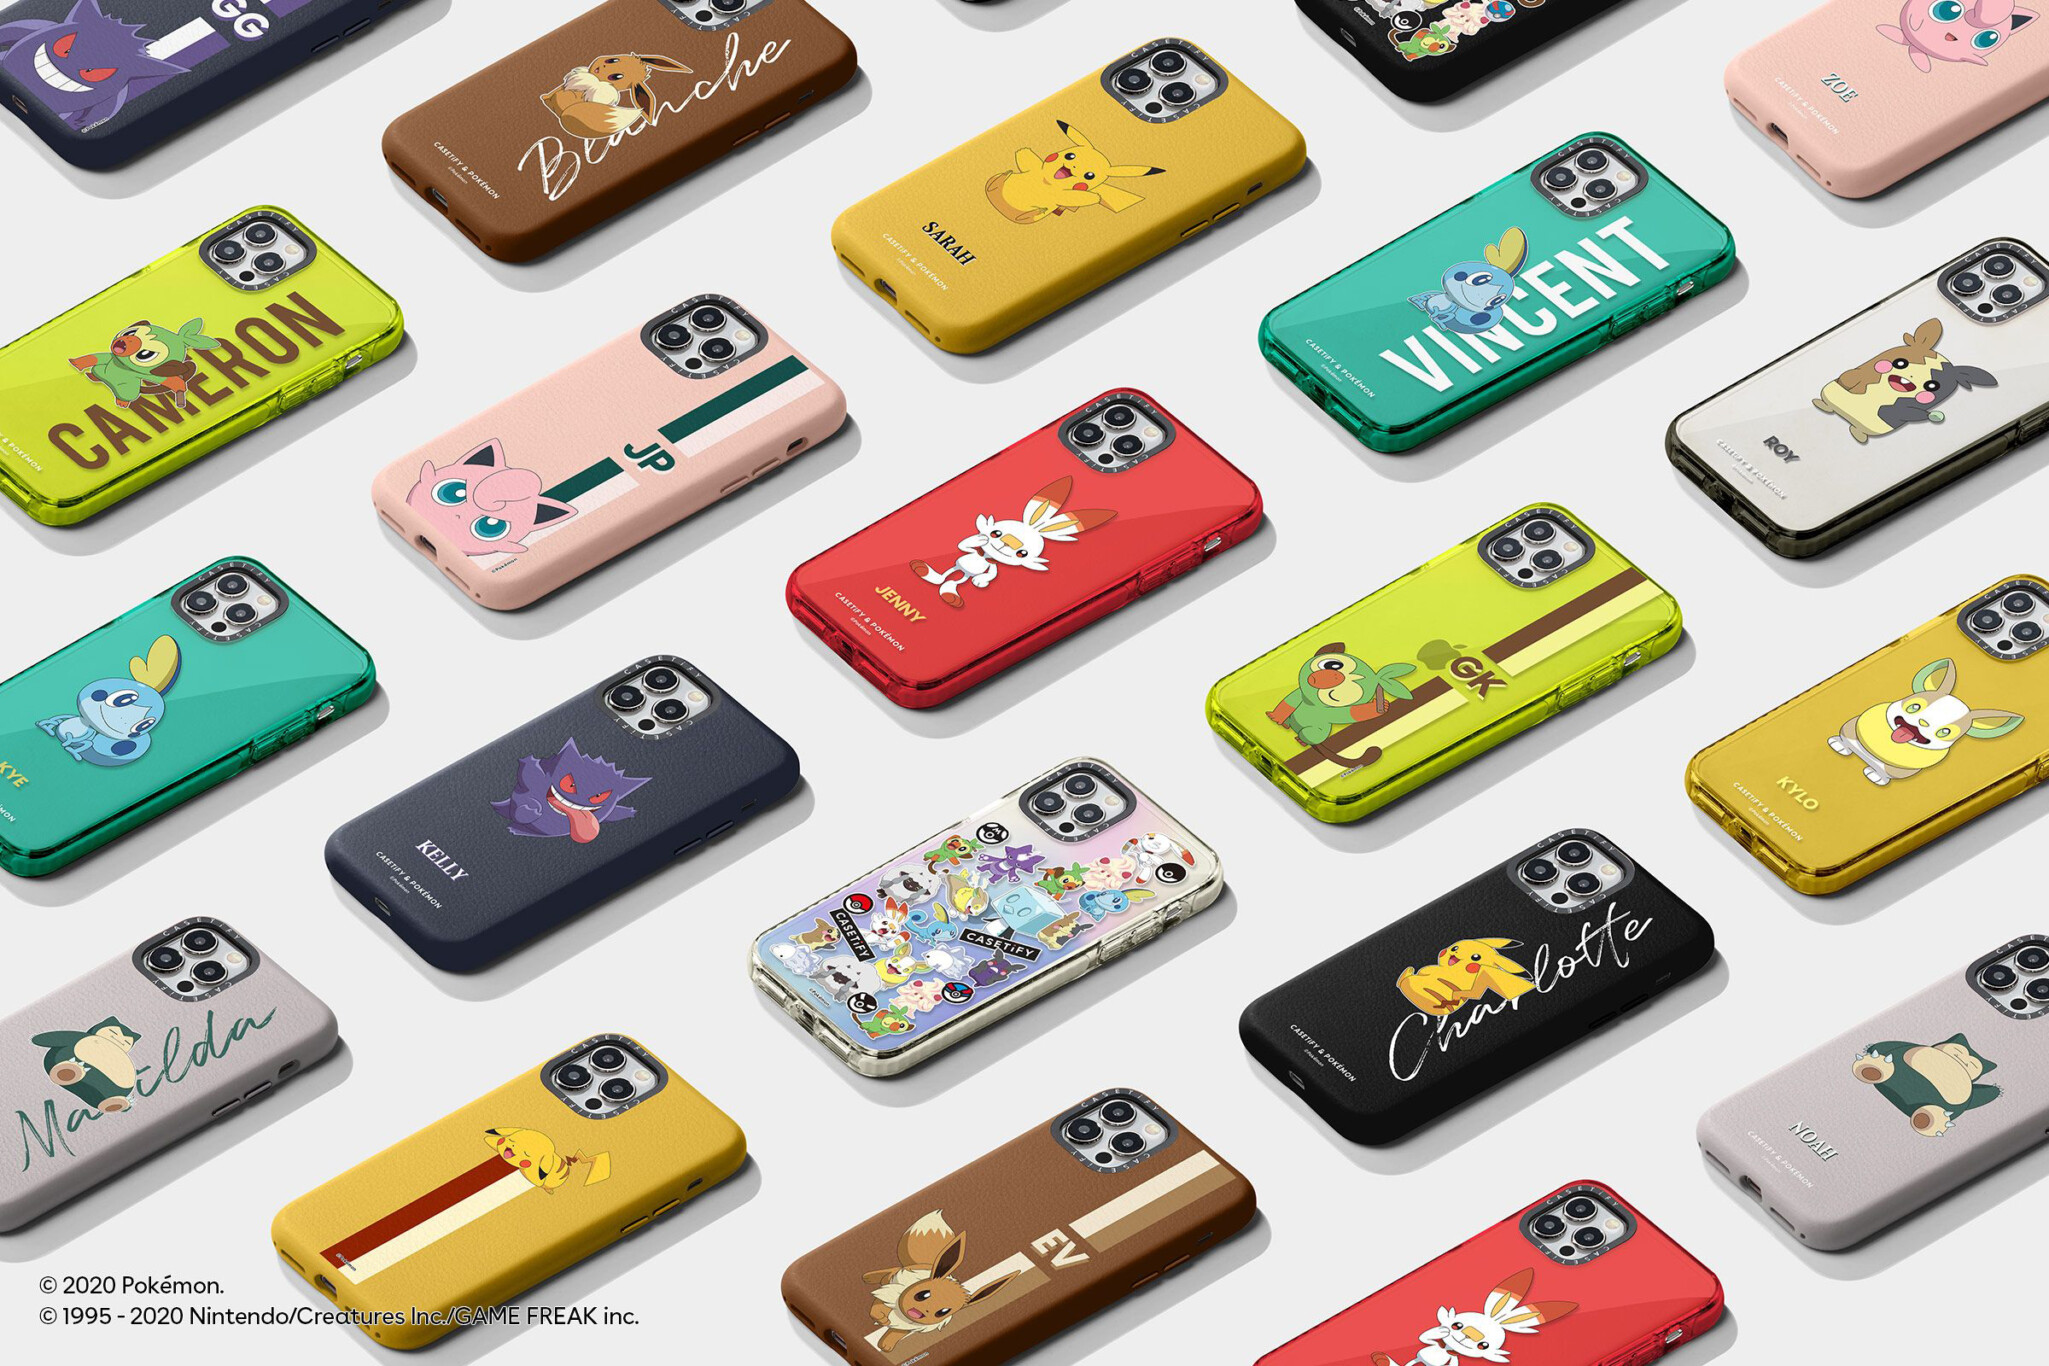 Pokemon and Casetify Team Up for 3 New Drops 2020